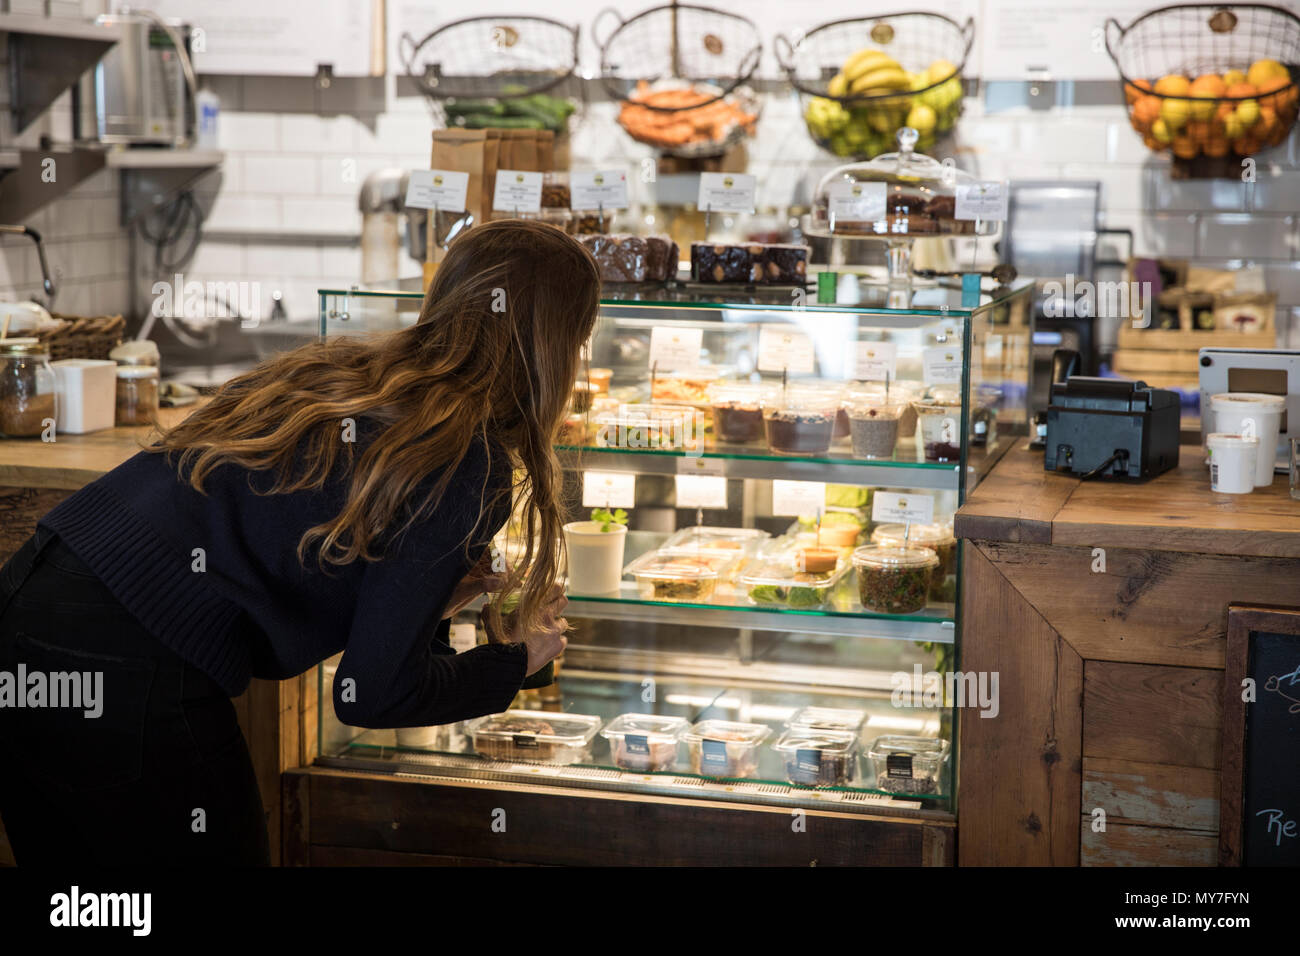 Young woman looking at fresh food display cabinet in cafe - Stock Image